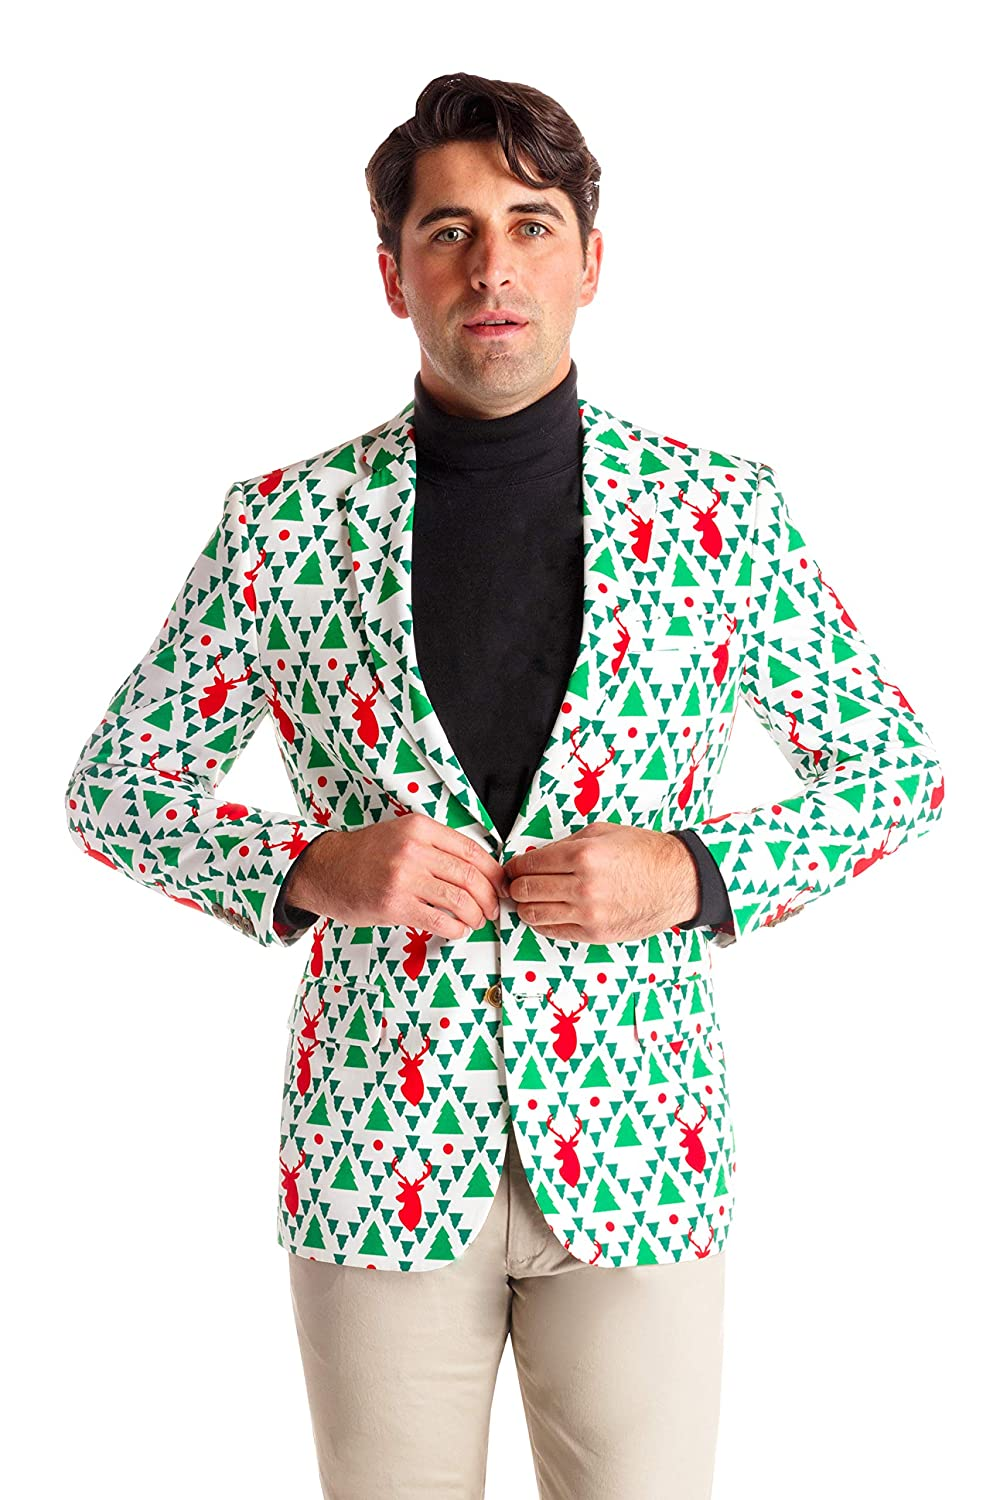 Shinesty Christmas Suits.Shinesty Men S Ugly Christmas Suit Jacket The Top Ugly